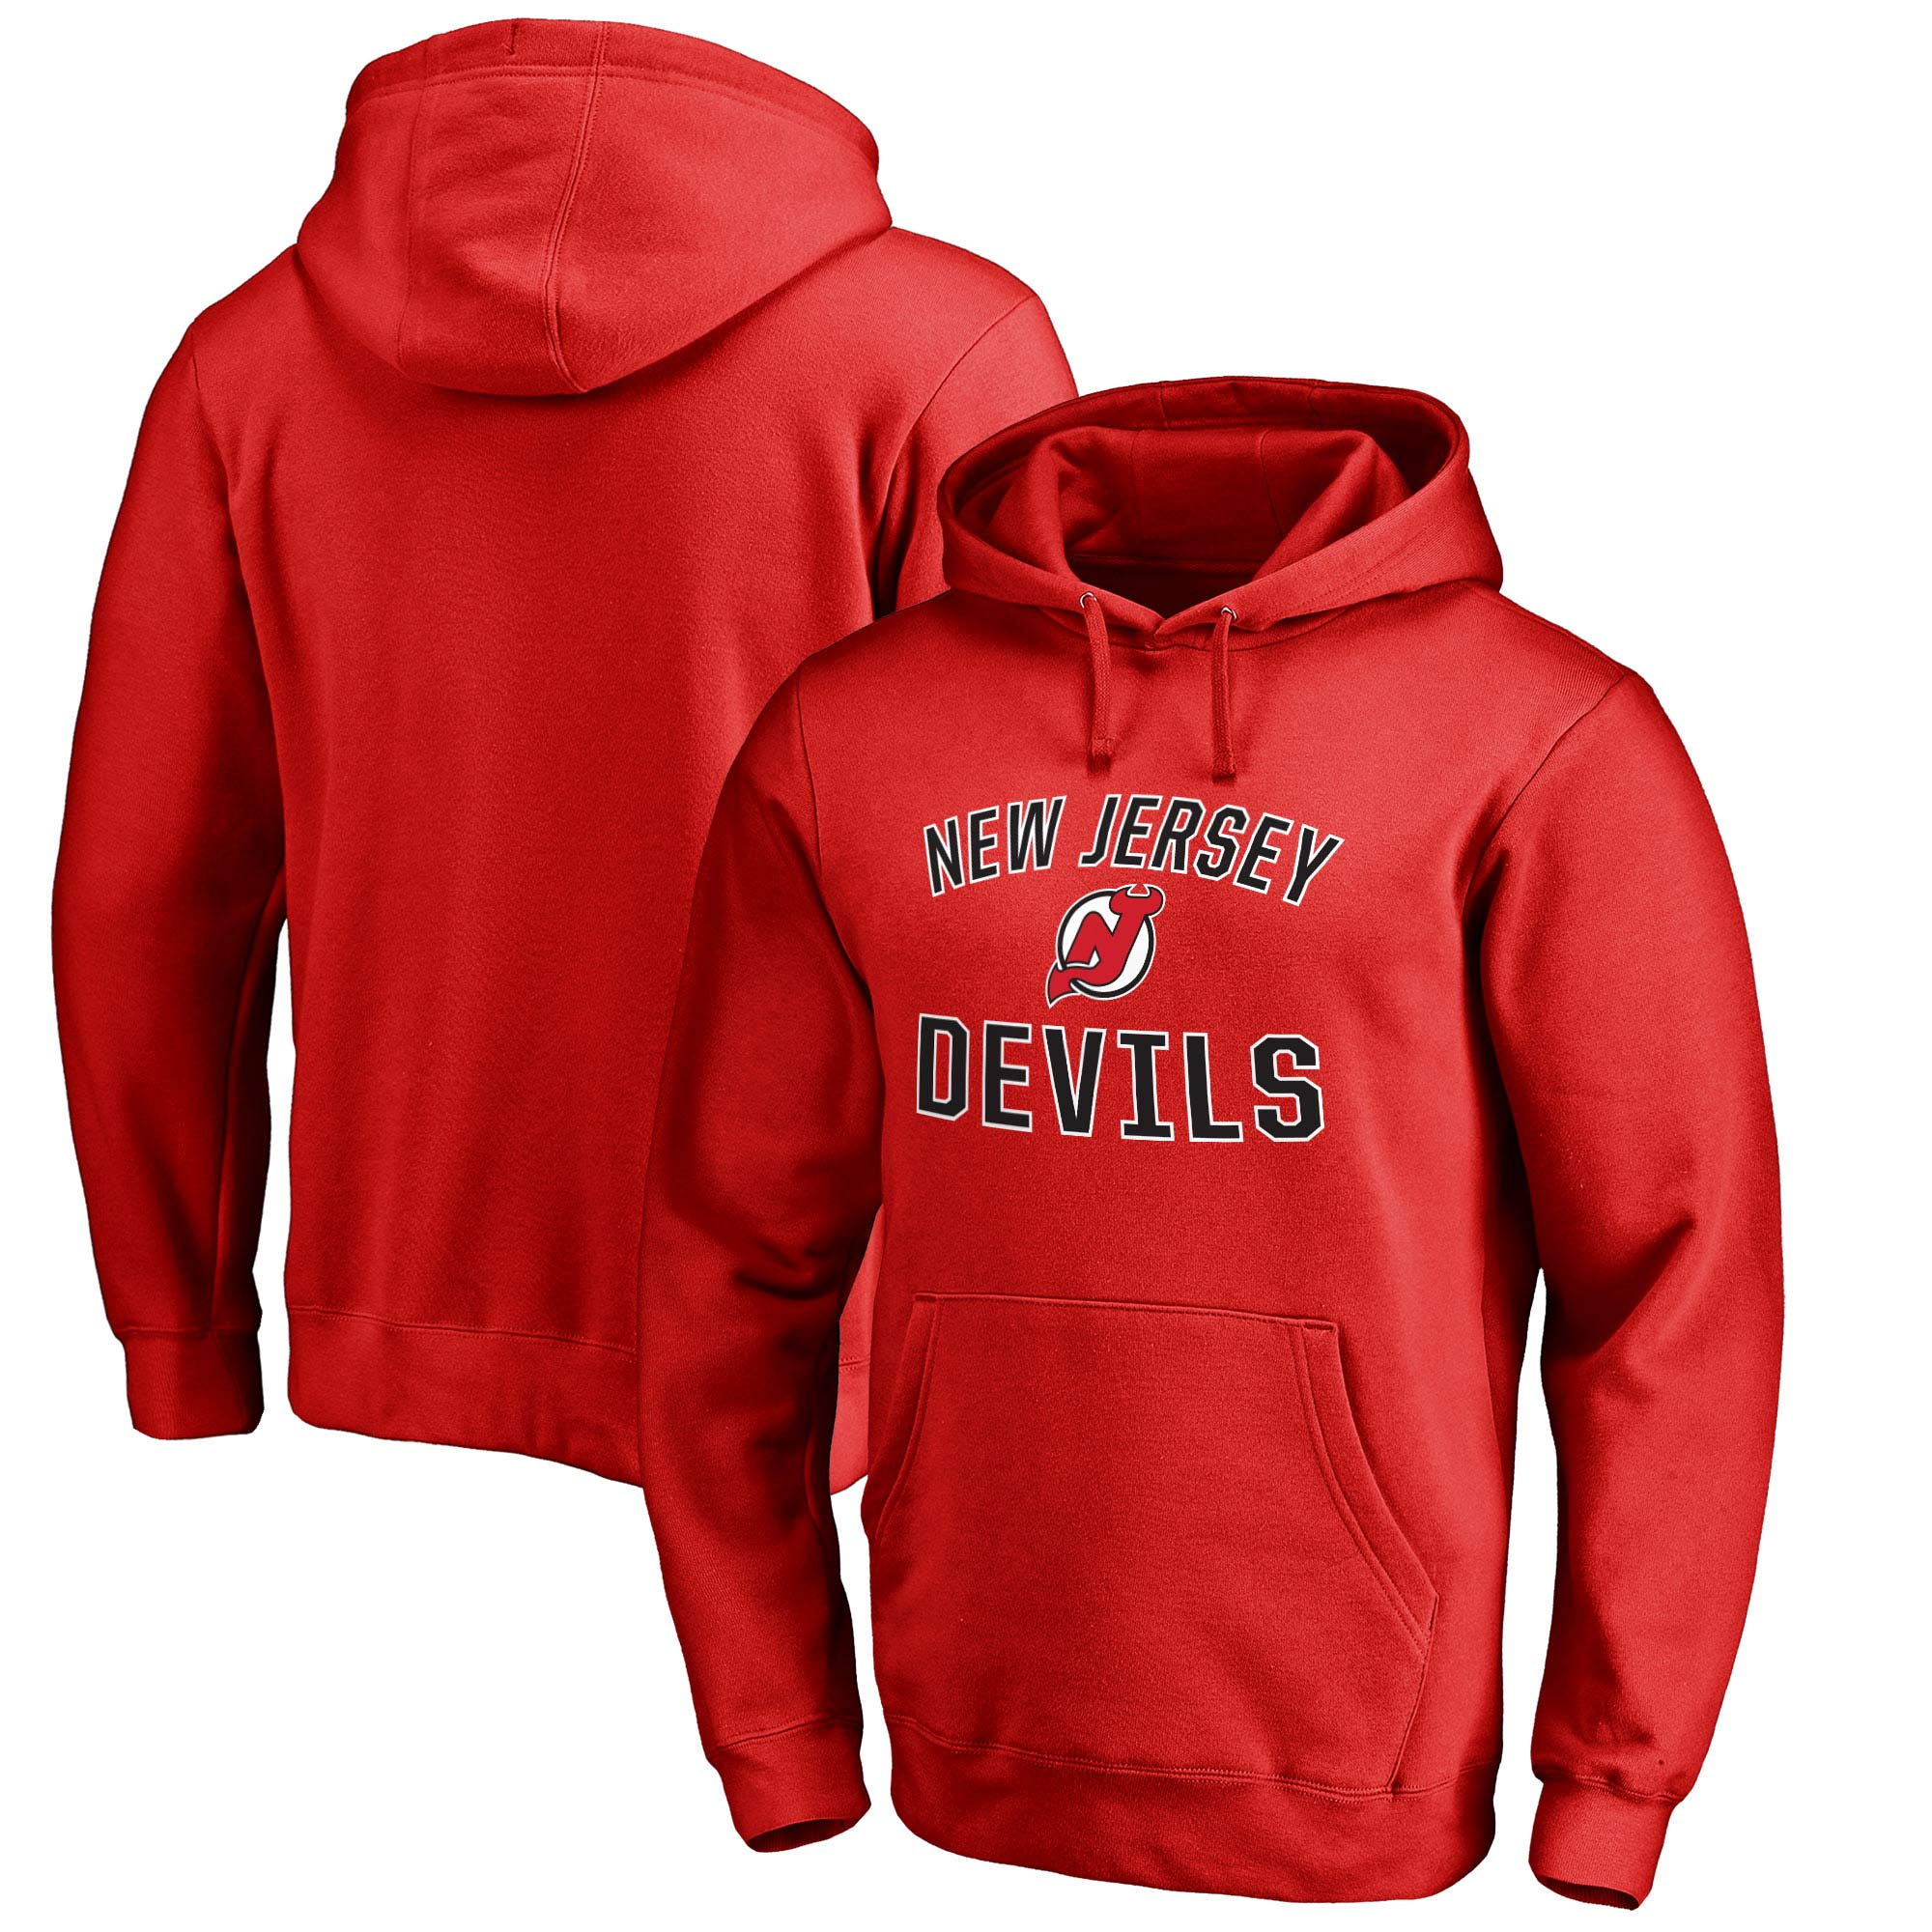 New Jersey Devils Victory Arch Fleece Pullover Hoodie - Red